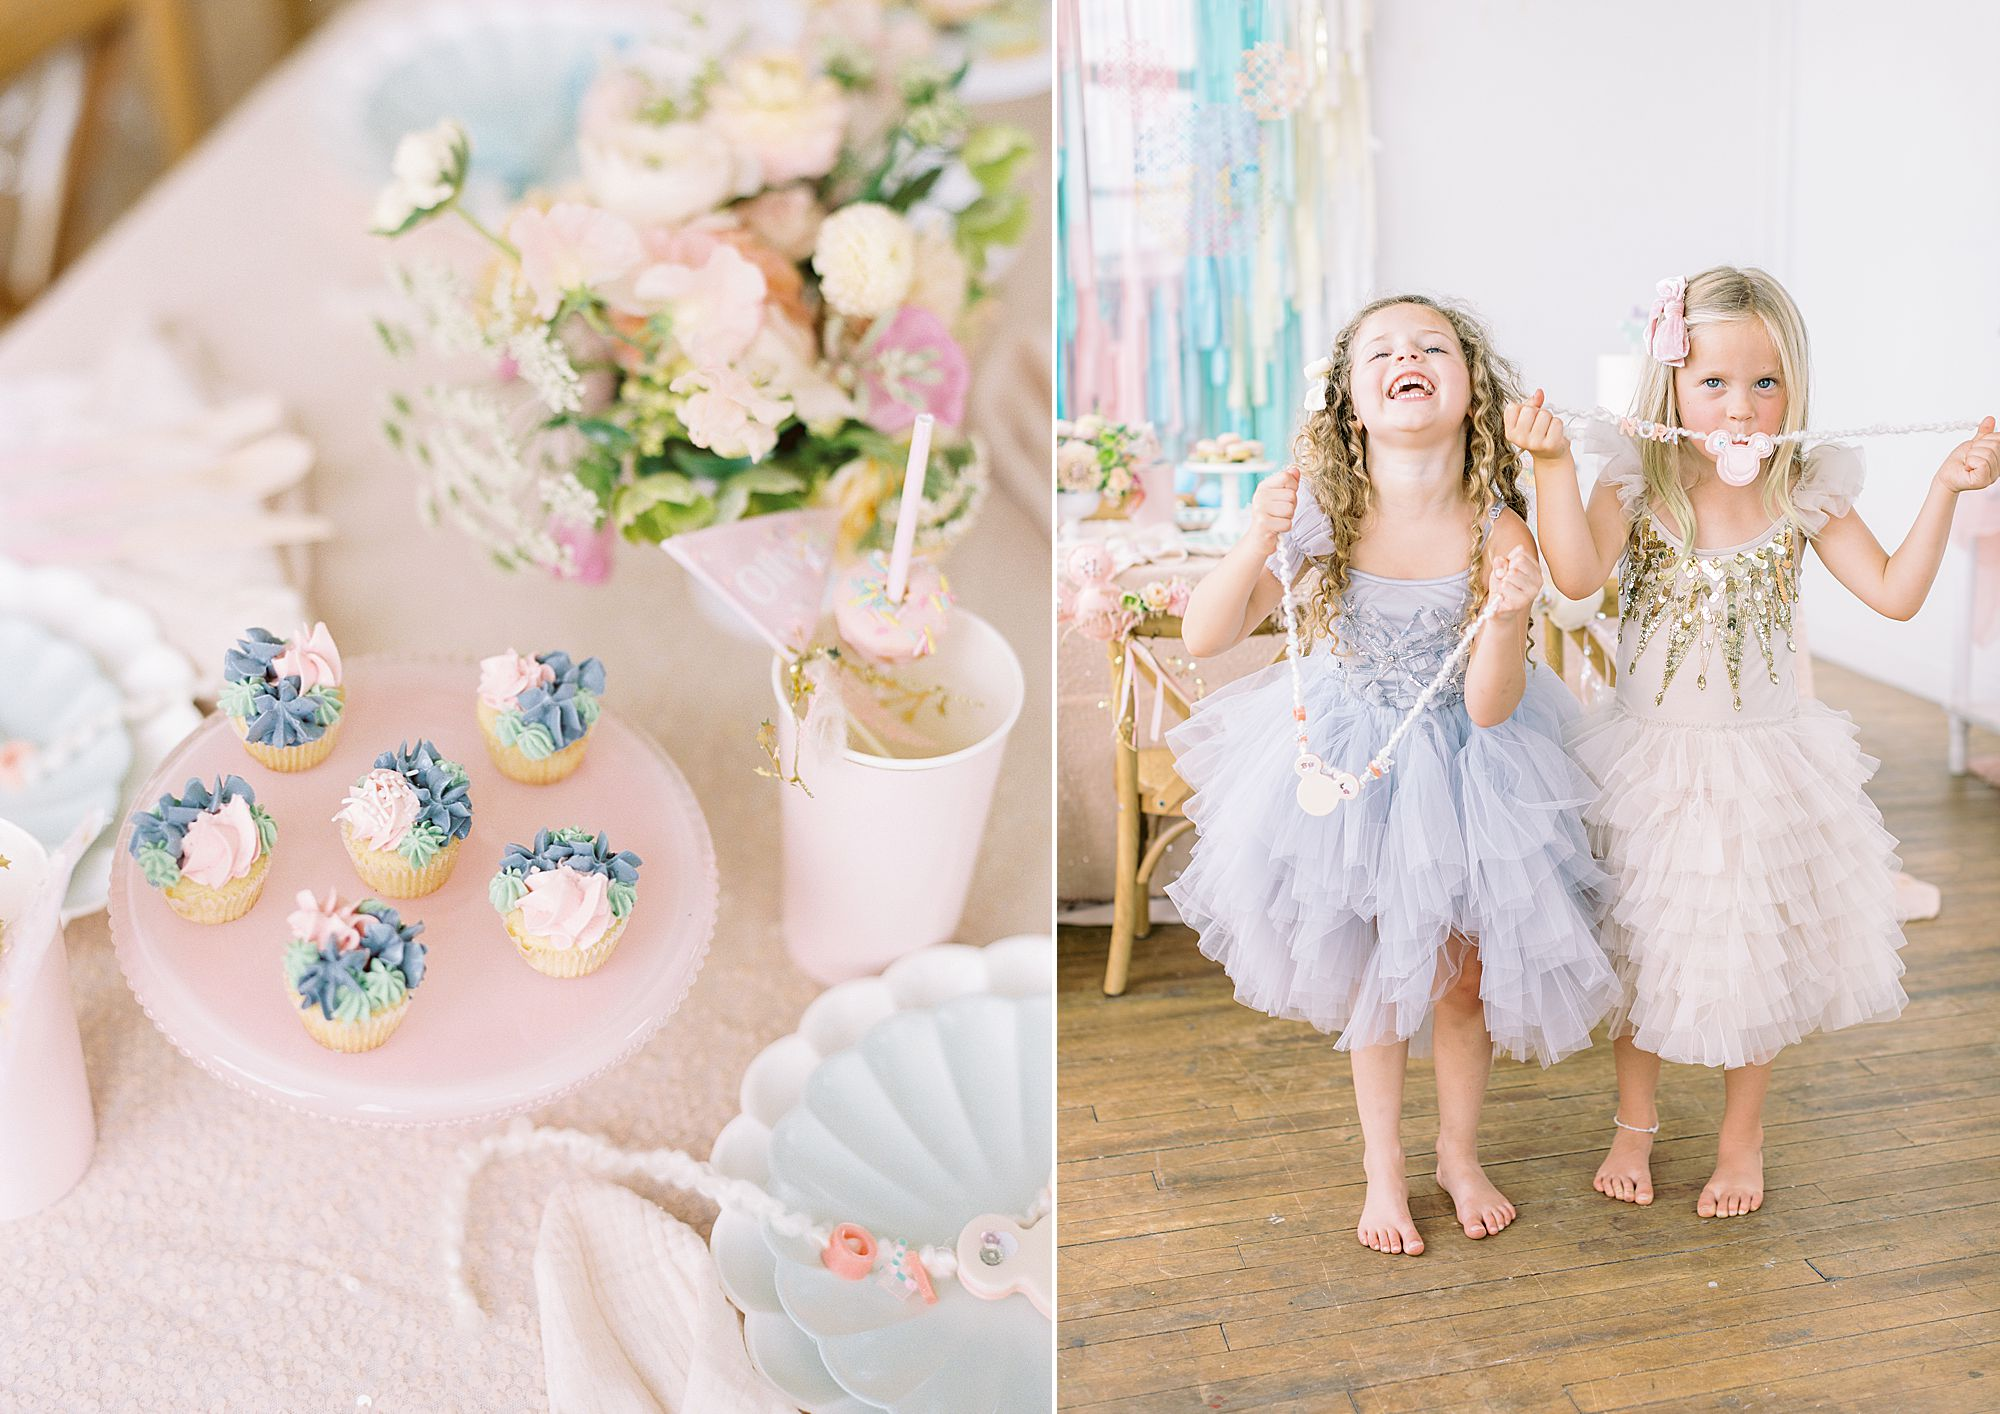 Vintage Disney Birthday Party for Princess Nora's Fourth Birthday - Featured on 100 Layer Cake - Ashley Baumgartner - Parker Grace Events_0034.jpg